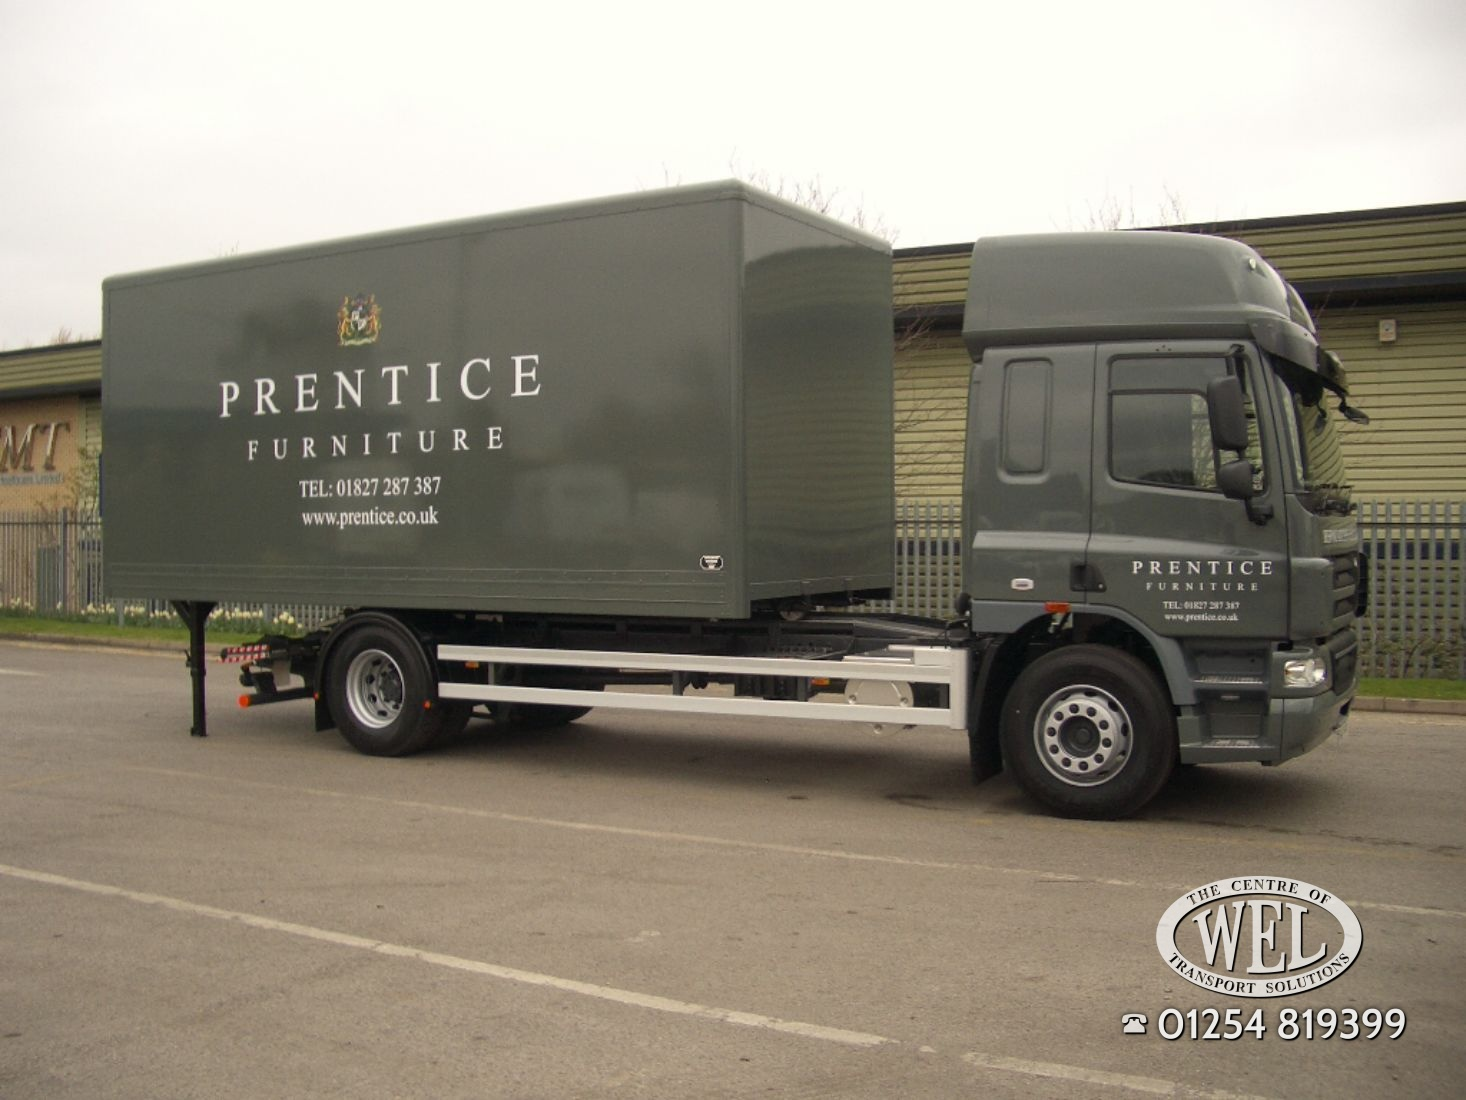 ... Fraikin Ltd   Prentice Furniture Ltd 2012 065 ...